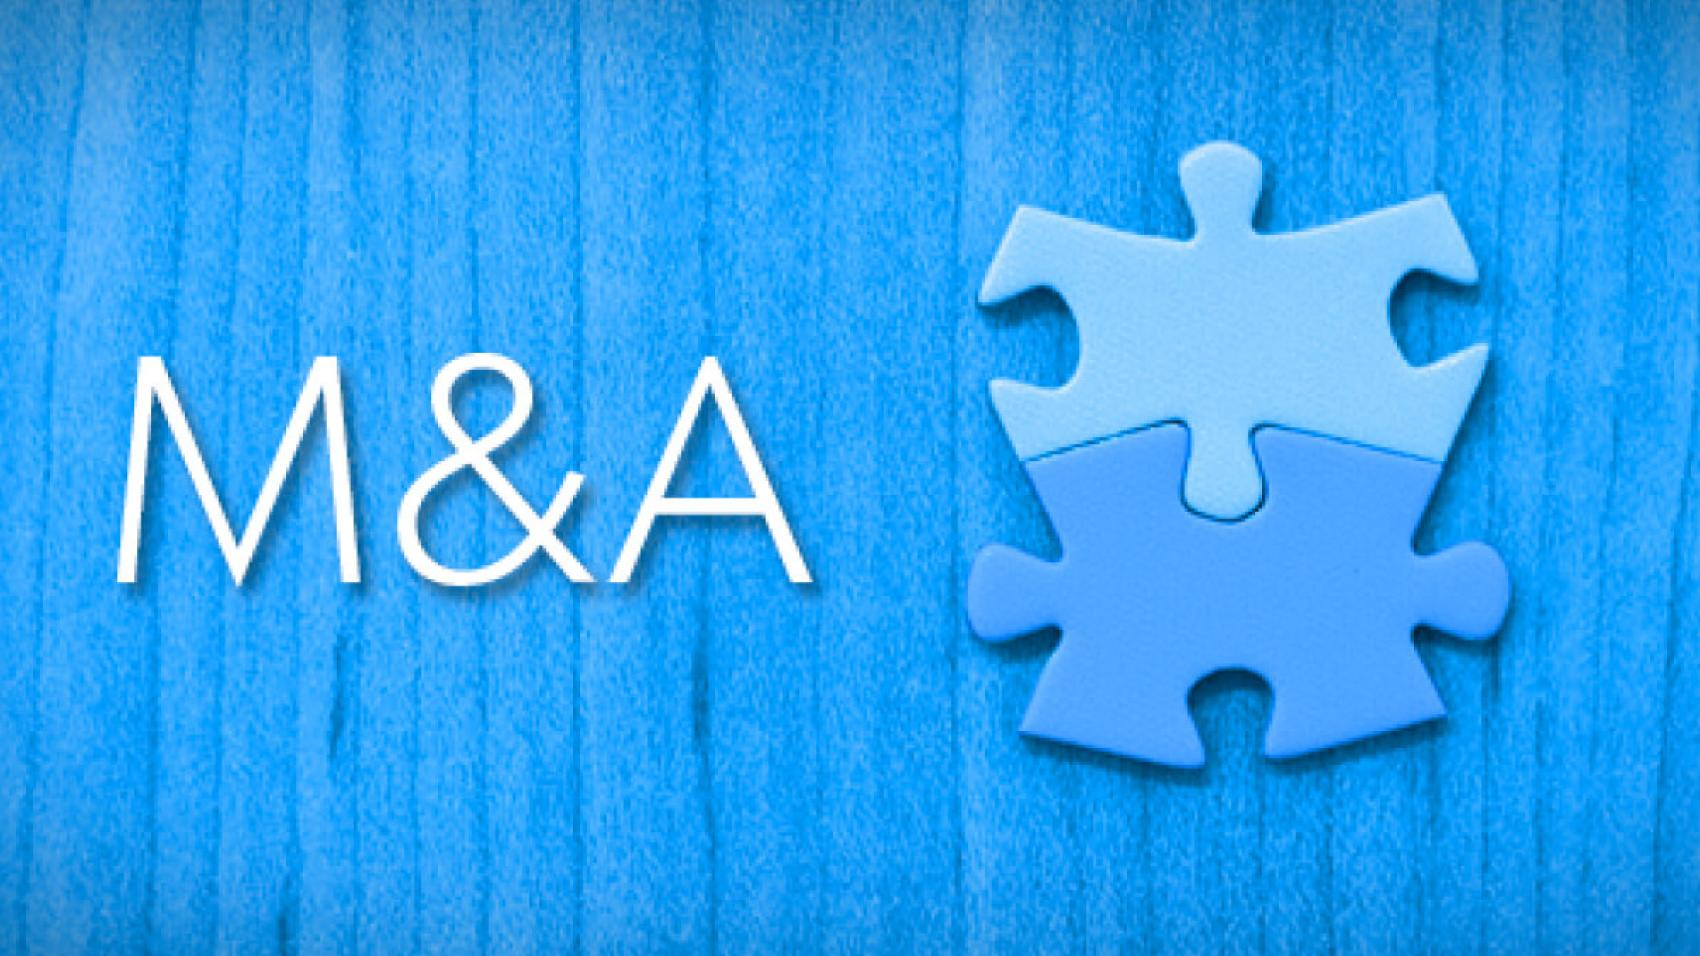 Staying in compliance during an M&A transaction